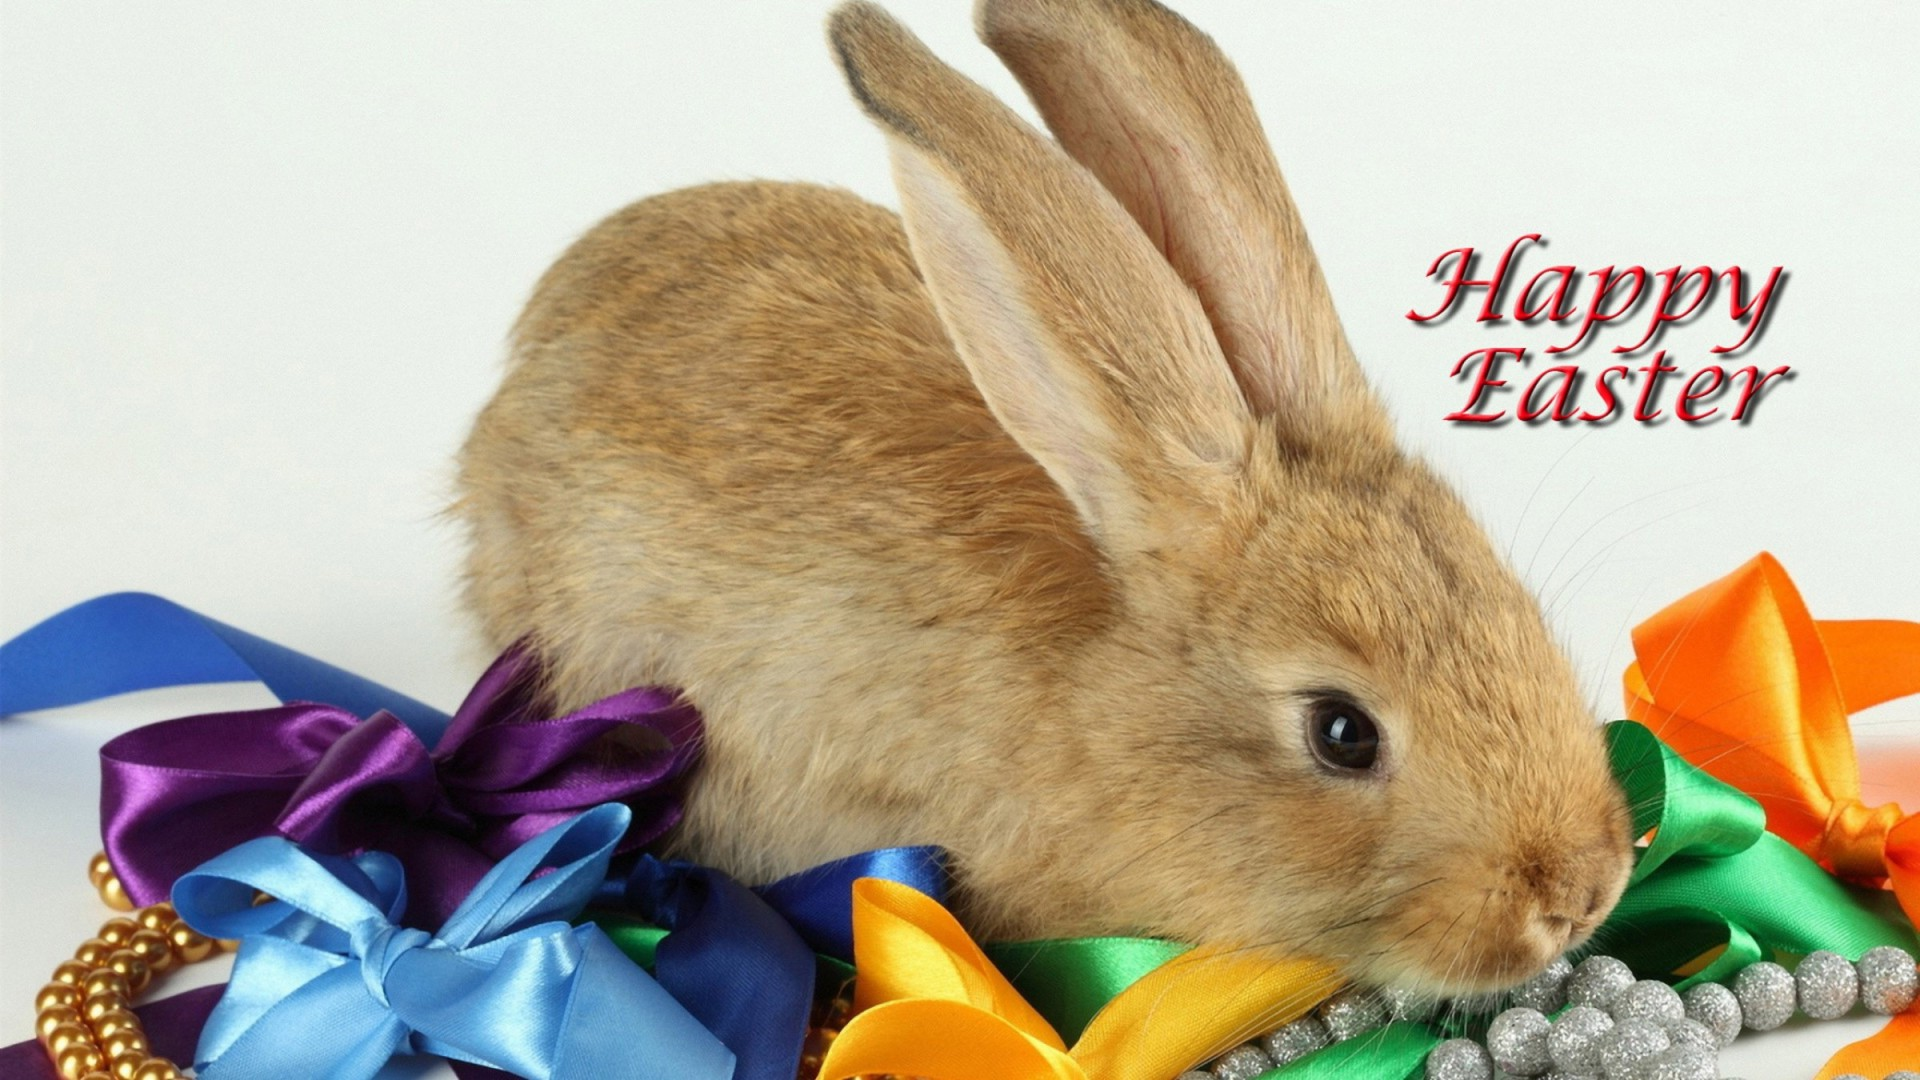 Happy Easter Bunny Pictures 5 1920x1080